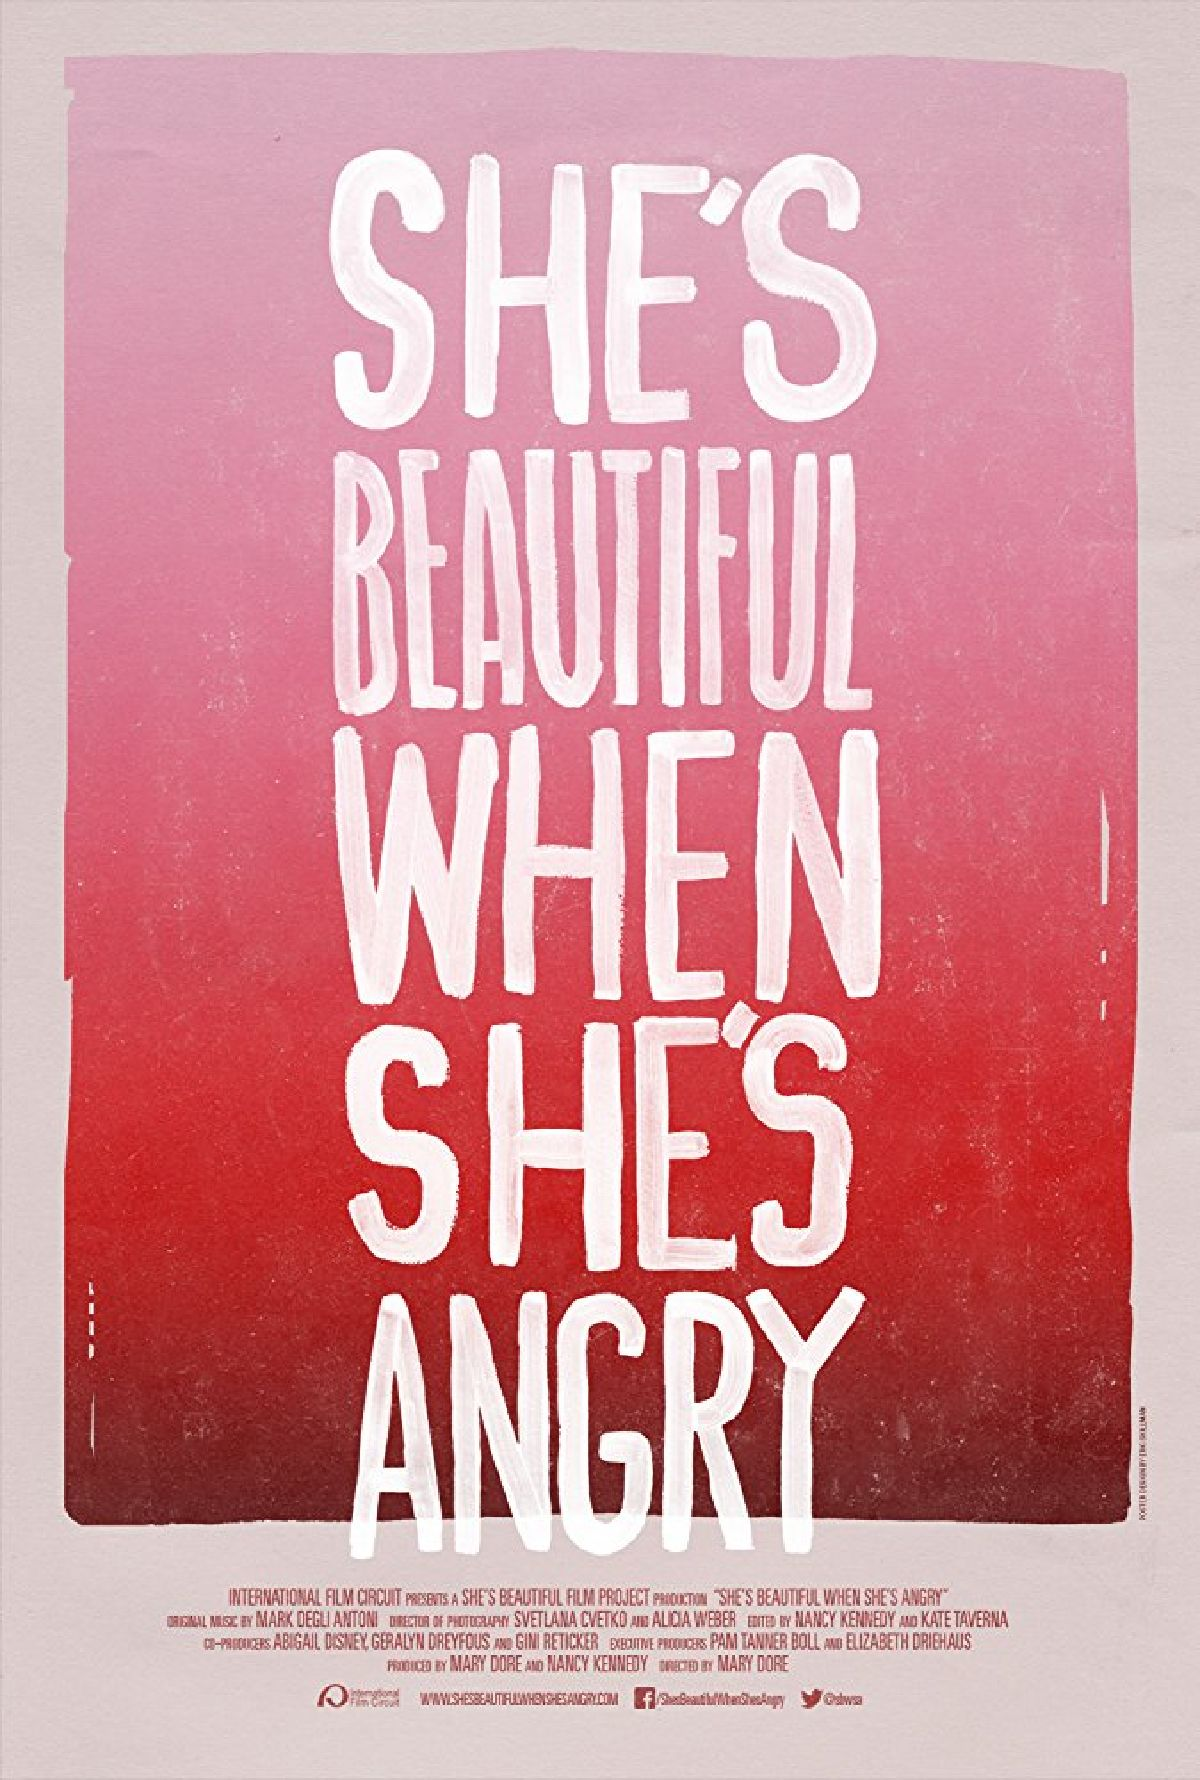 'She's Beautiful When She's Angry' movie poster